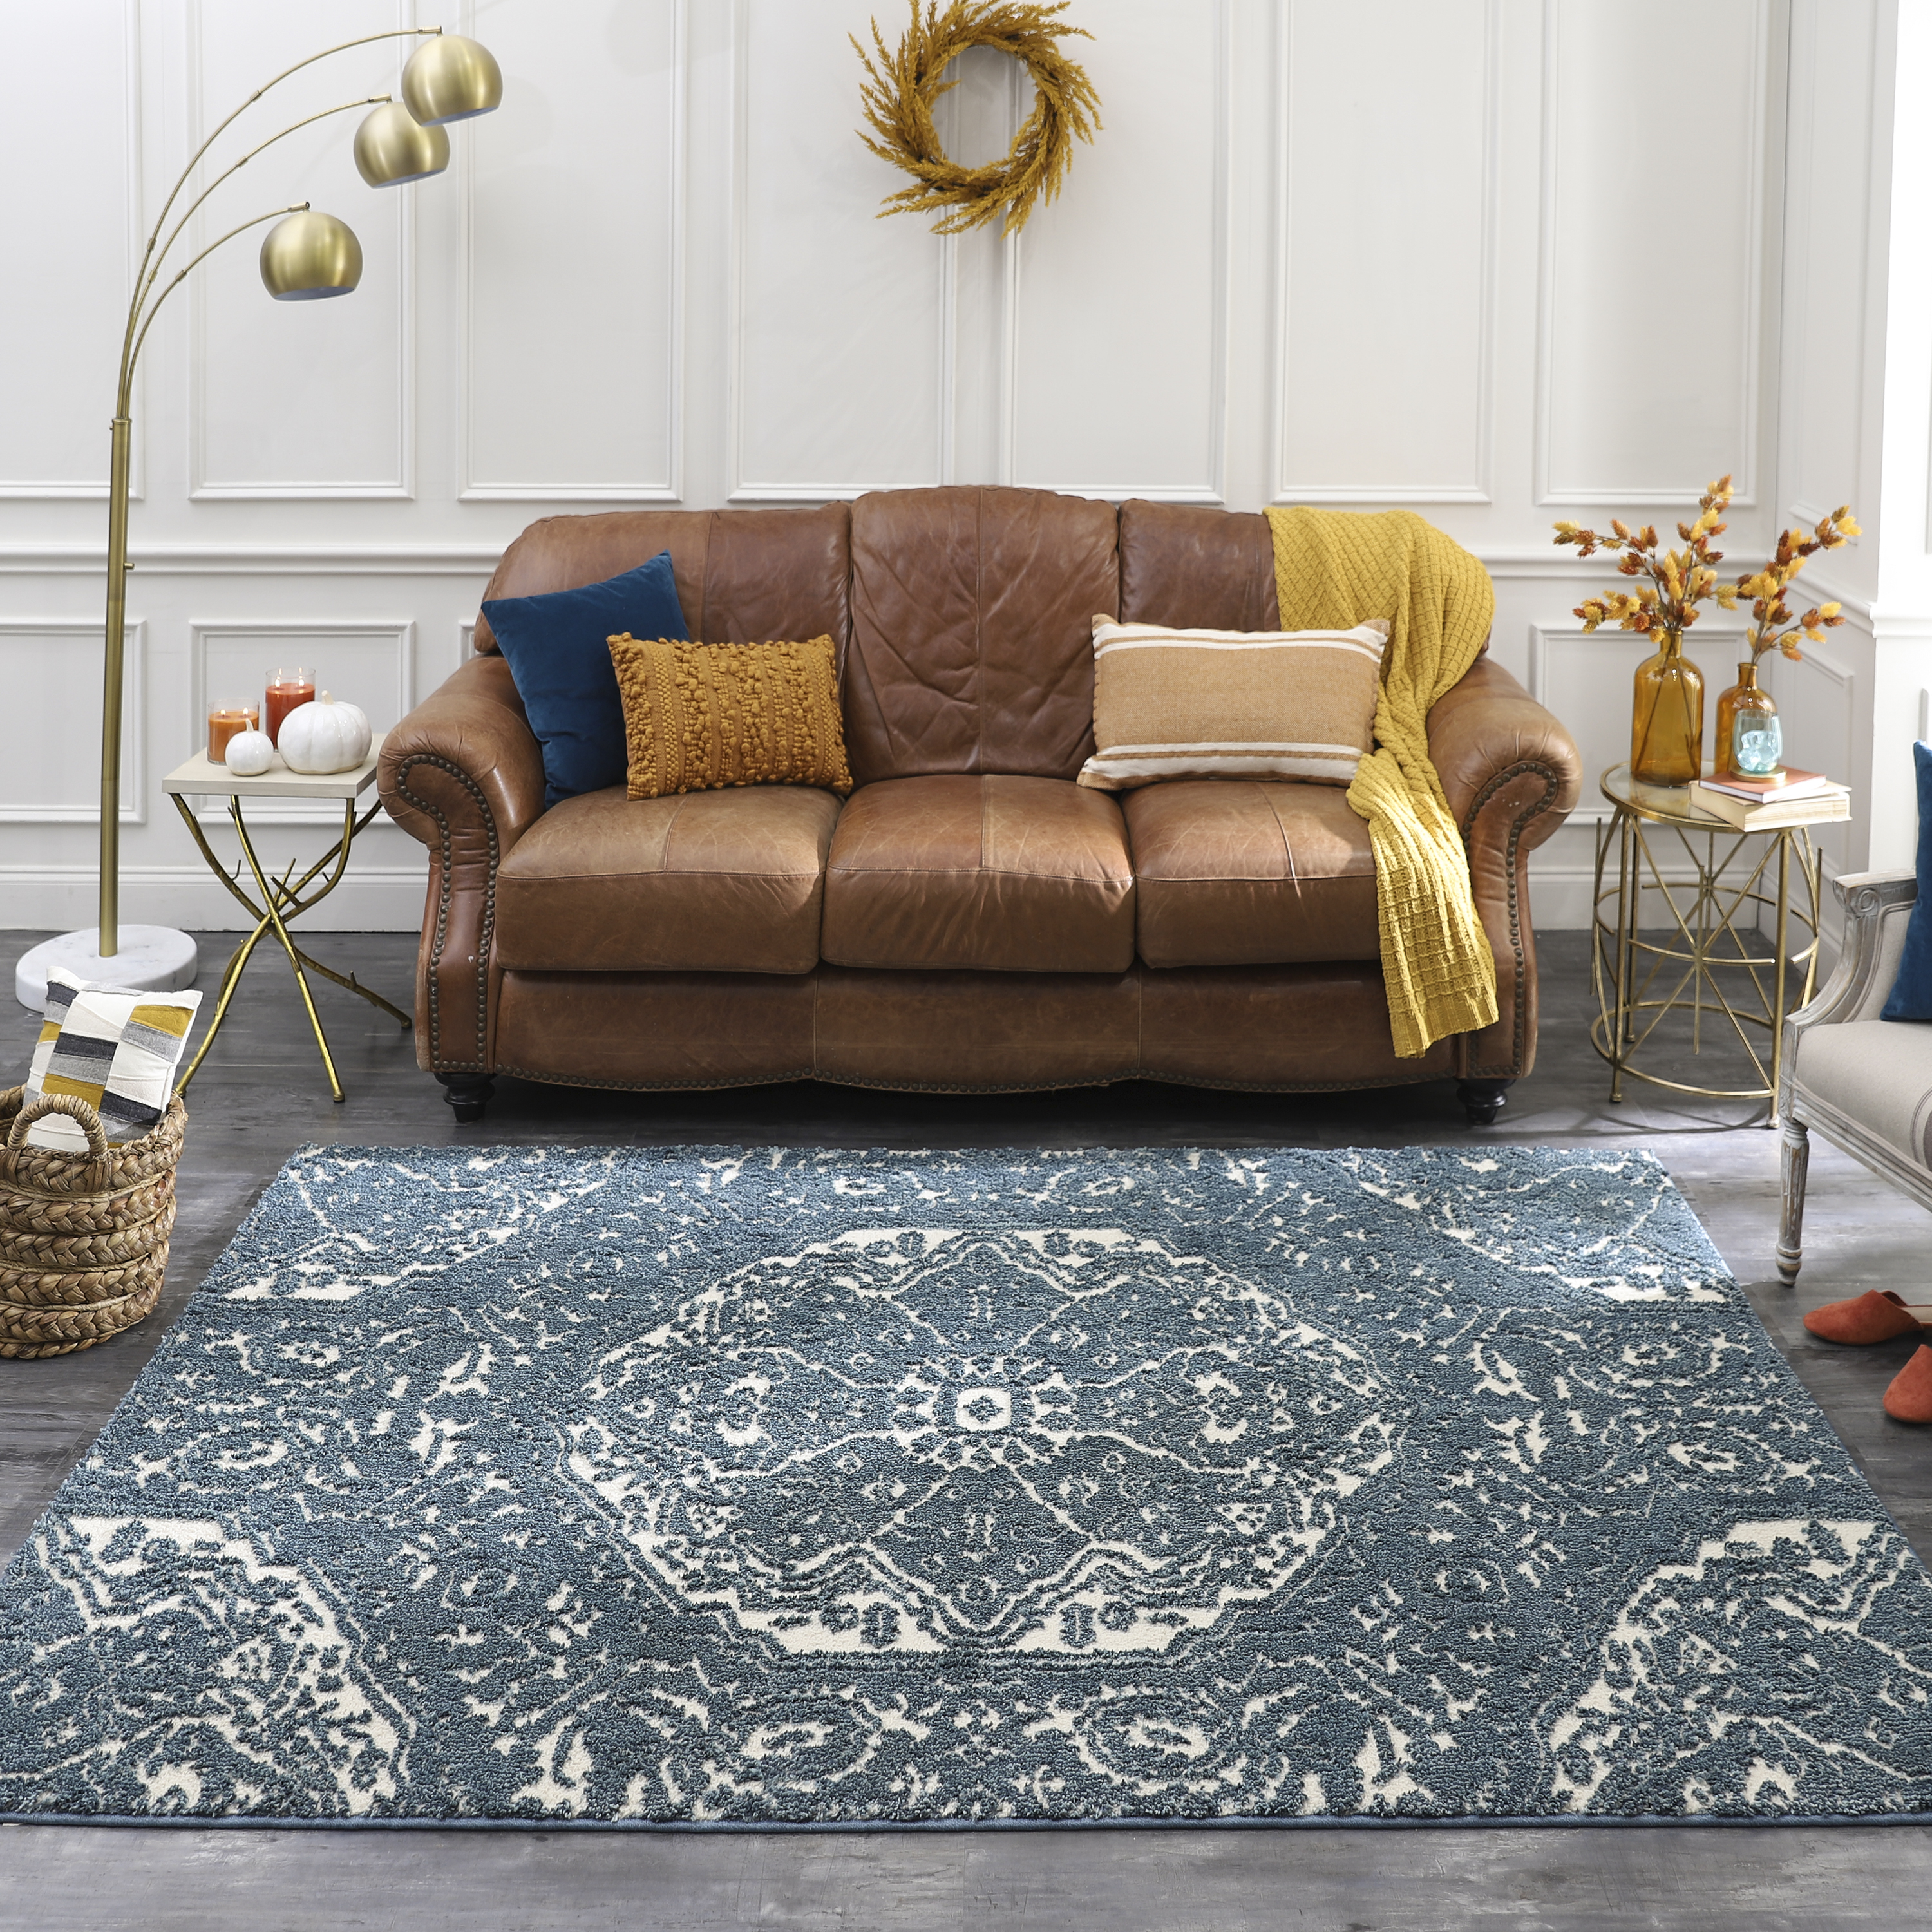 Arrange Furniture Around An Area Rug